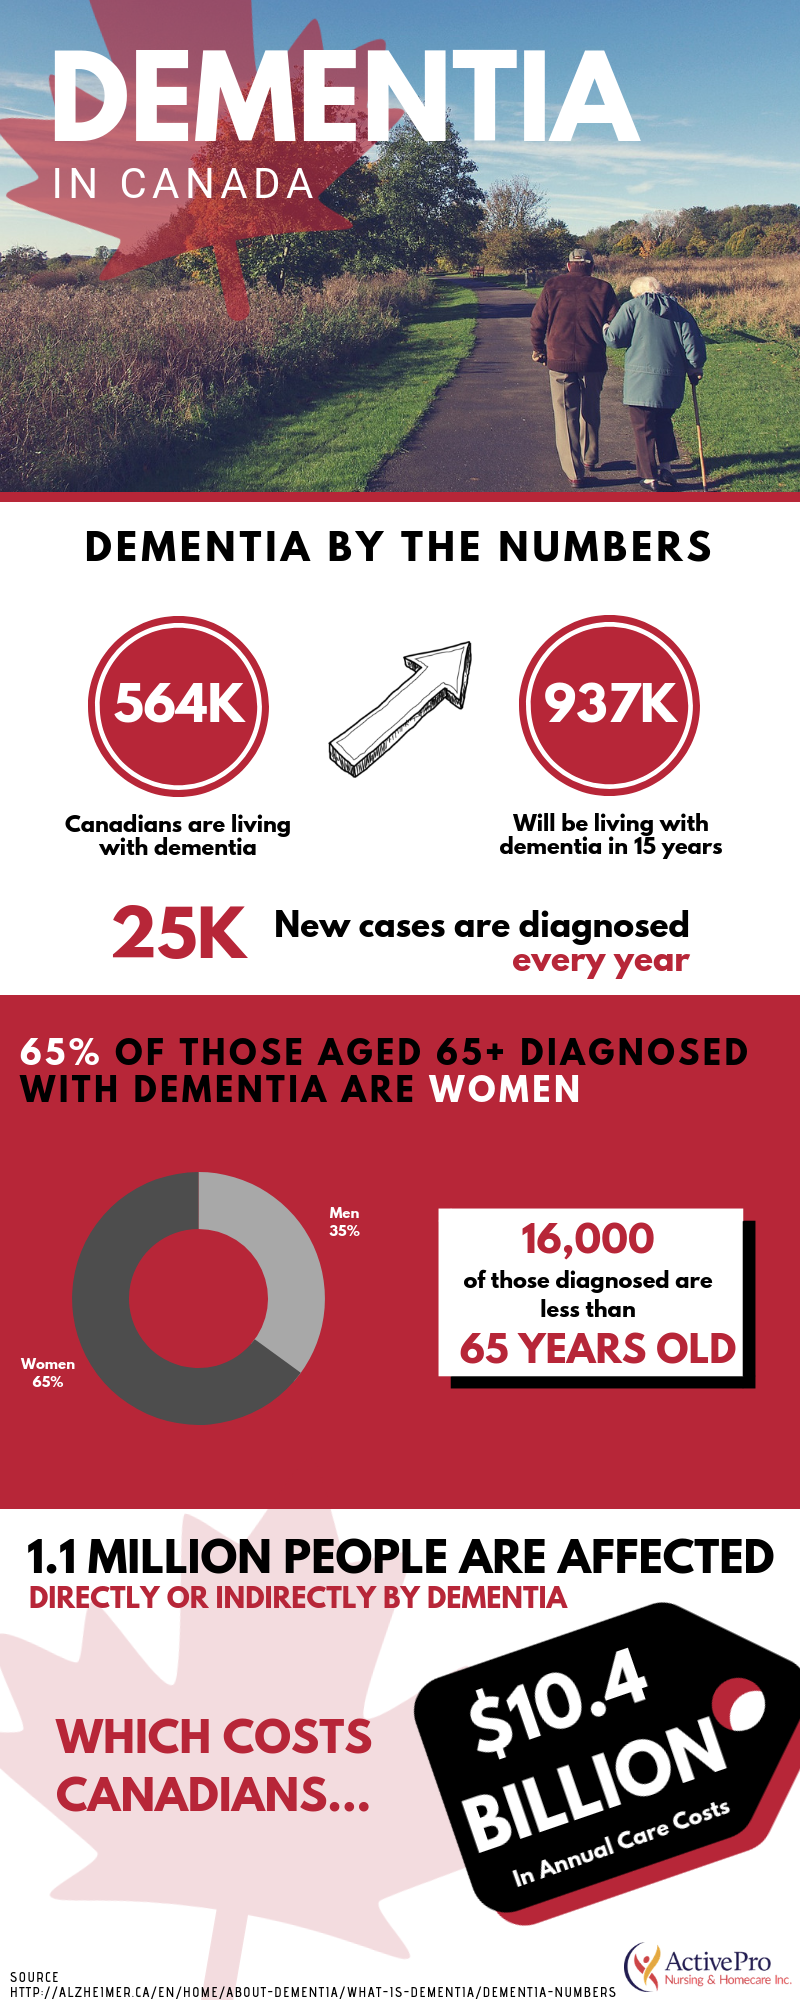 Infographic about Dementia in Canada by the numbers